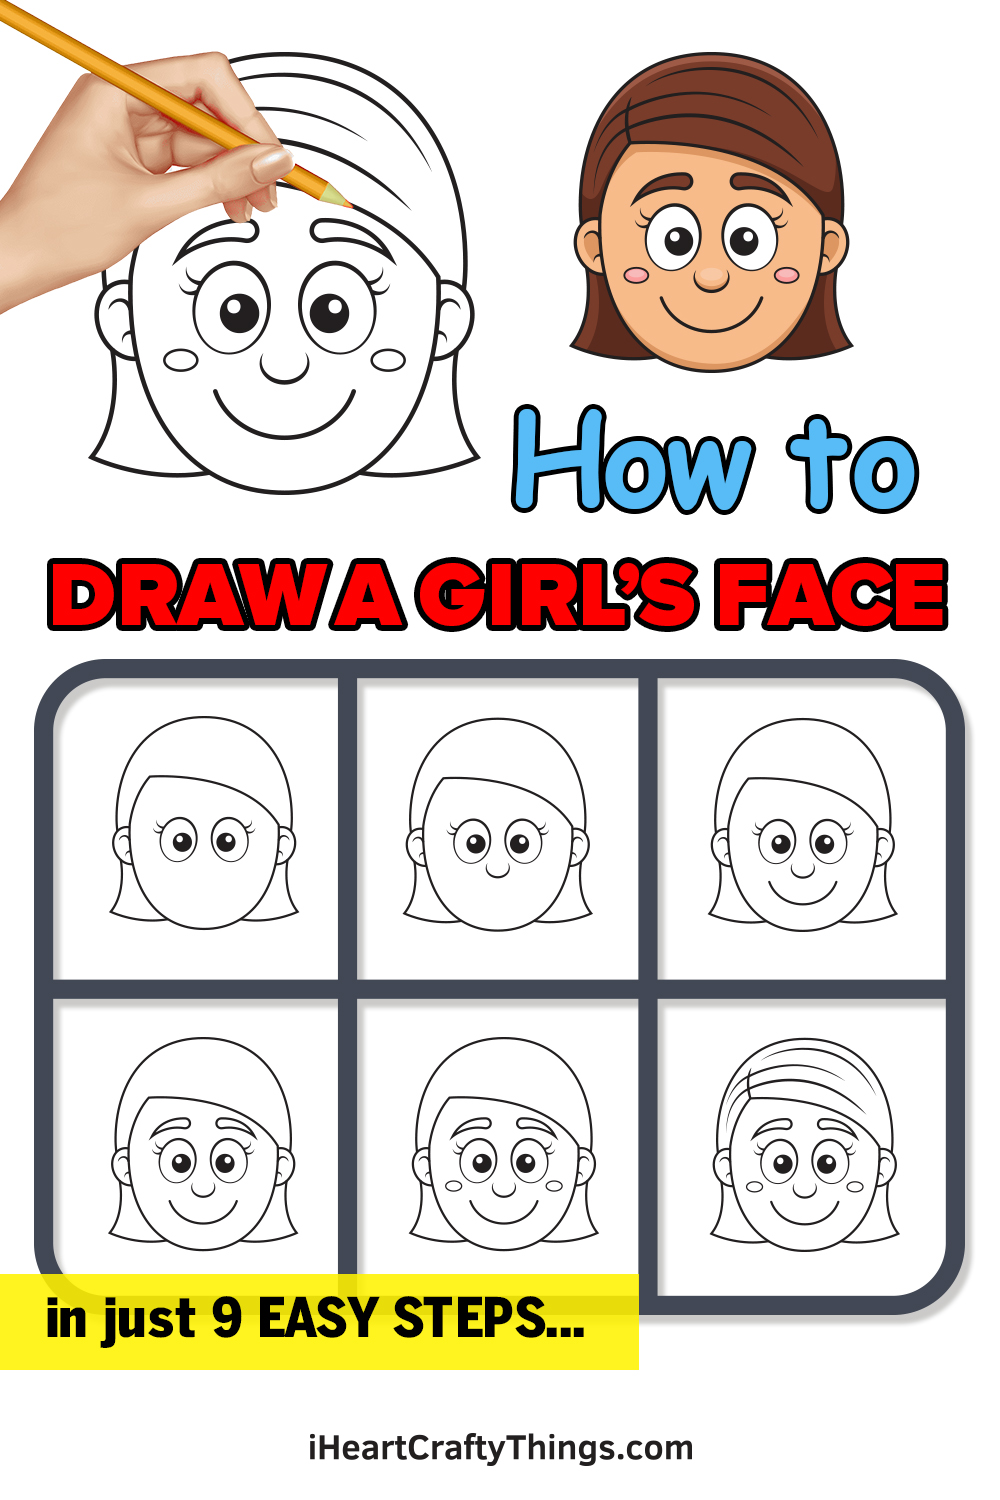 How to Draw a Girl's Face in 9 Easy Steps